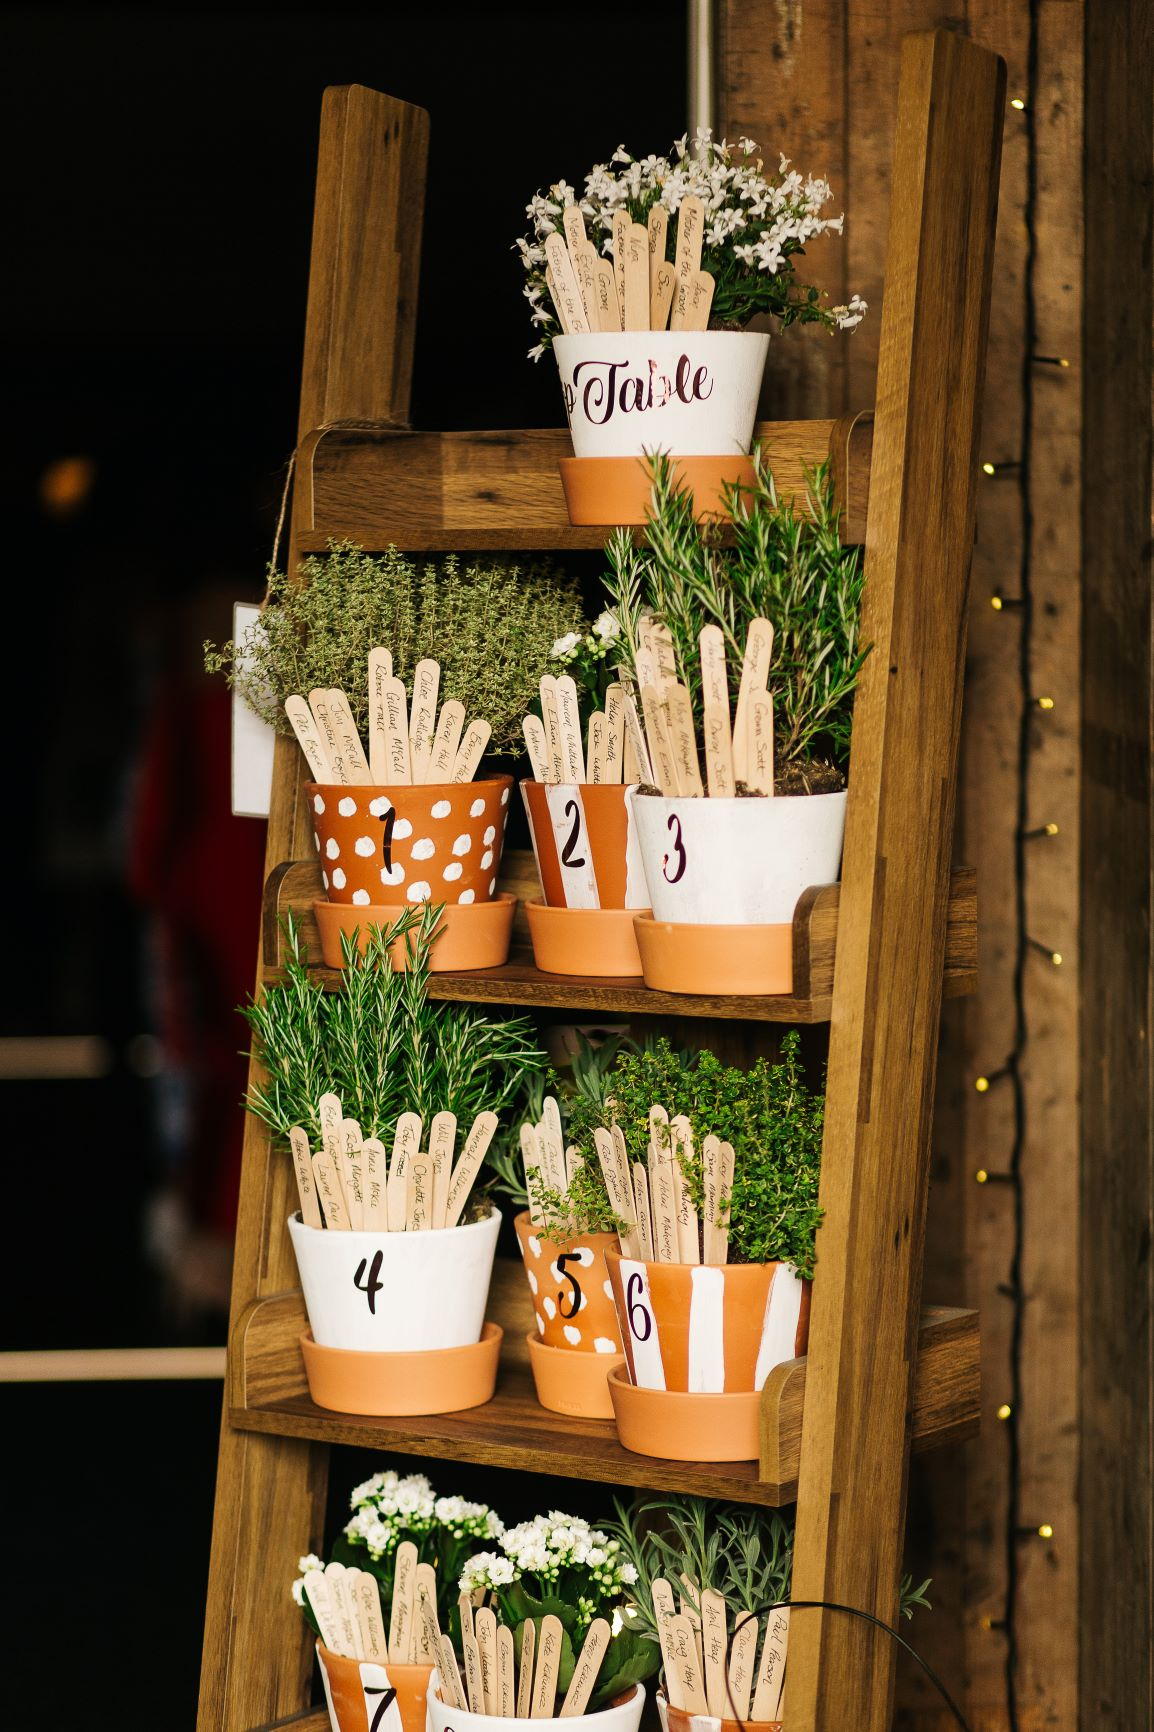 Potty table plan. Photo by pauljosephphotography.com.jpg